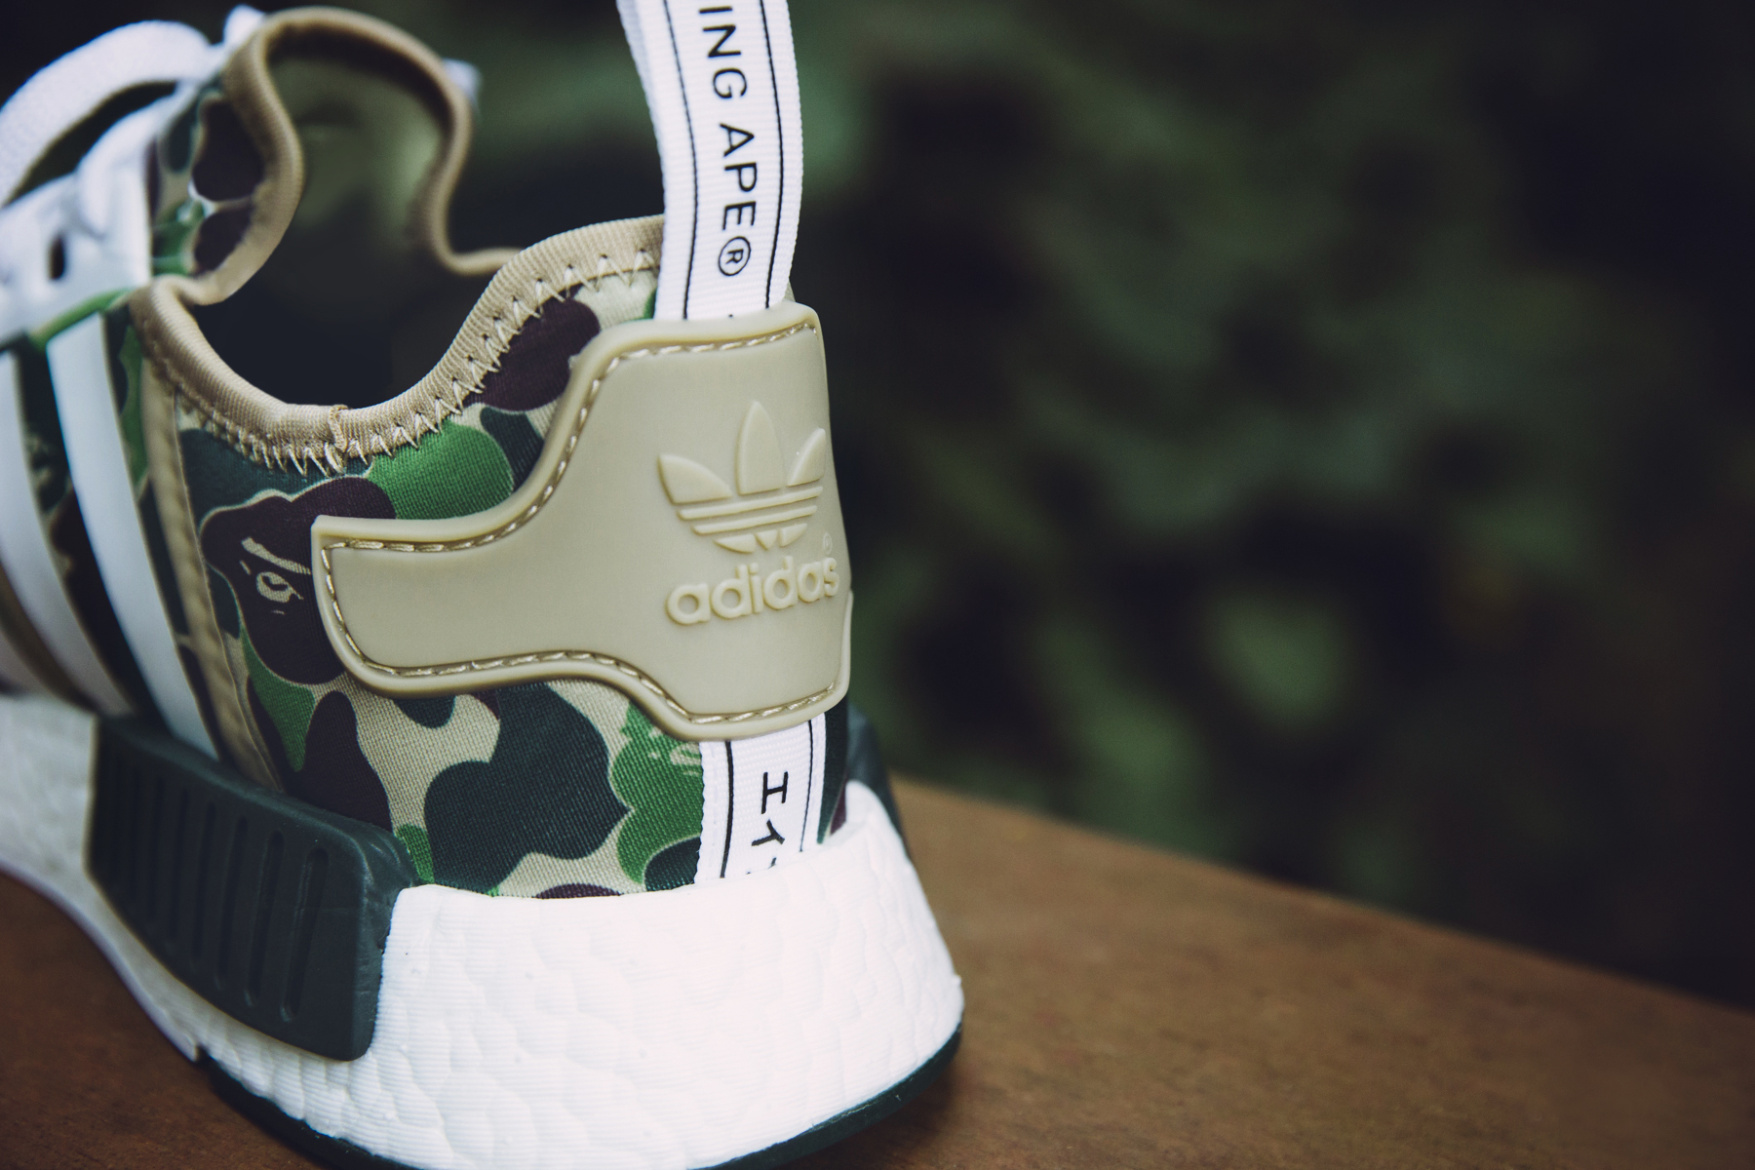 bape-x-adidas-originals-nmd-closer-look-6